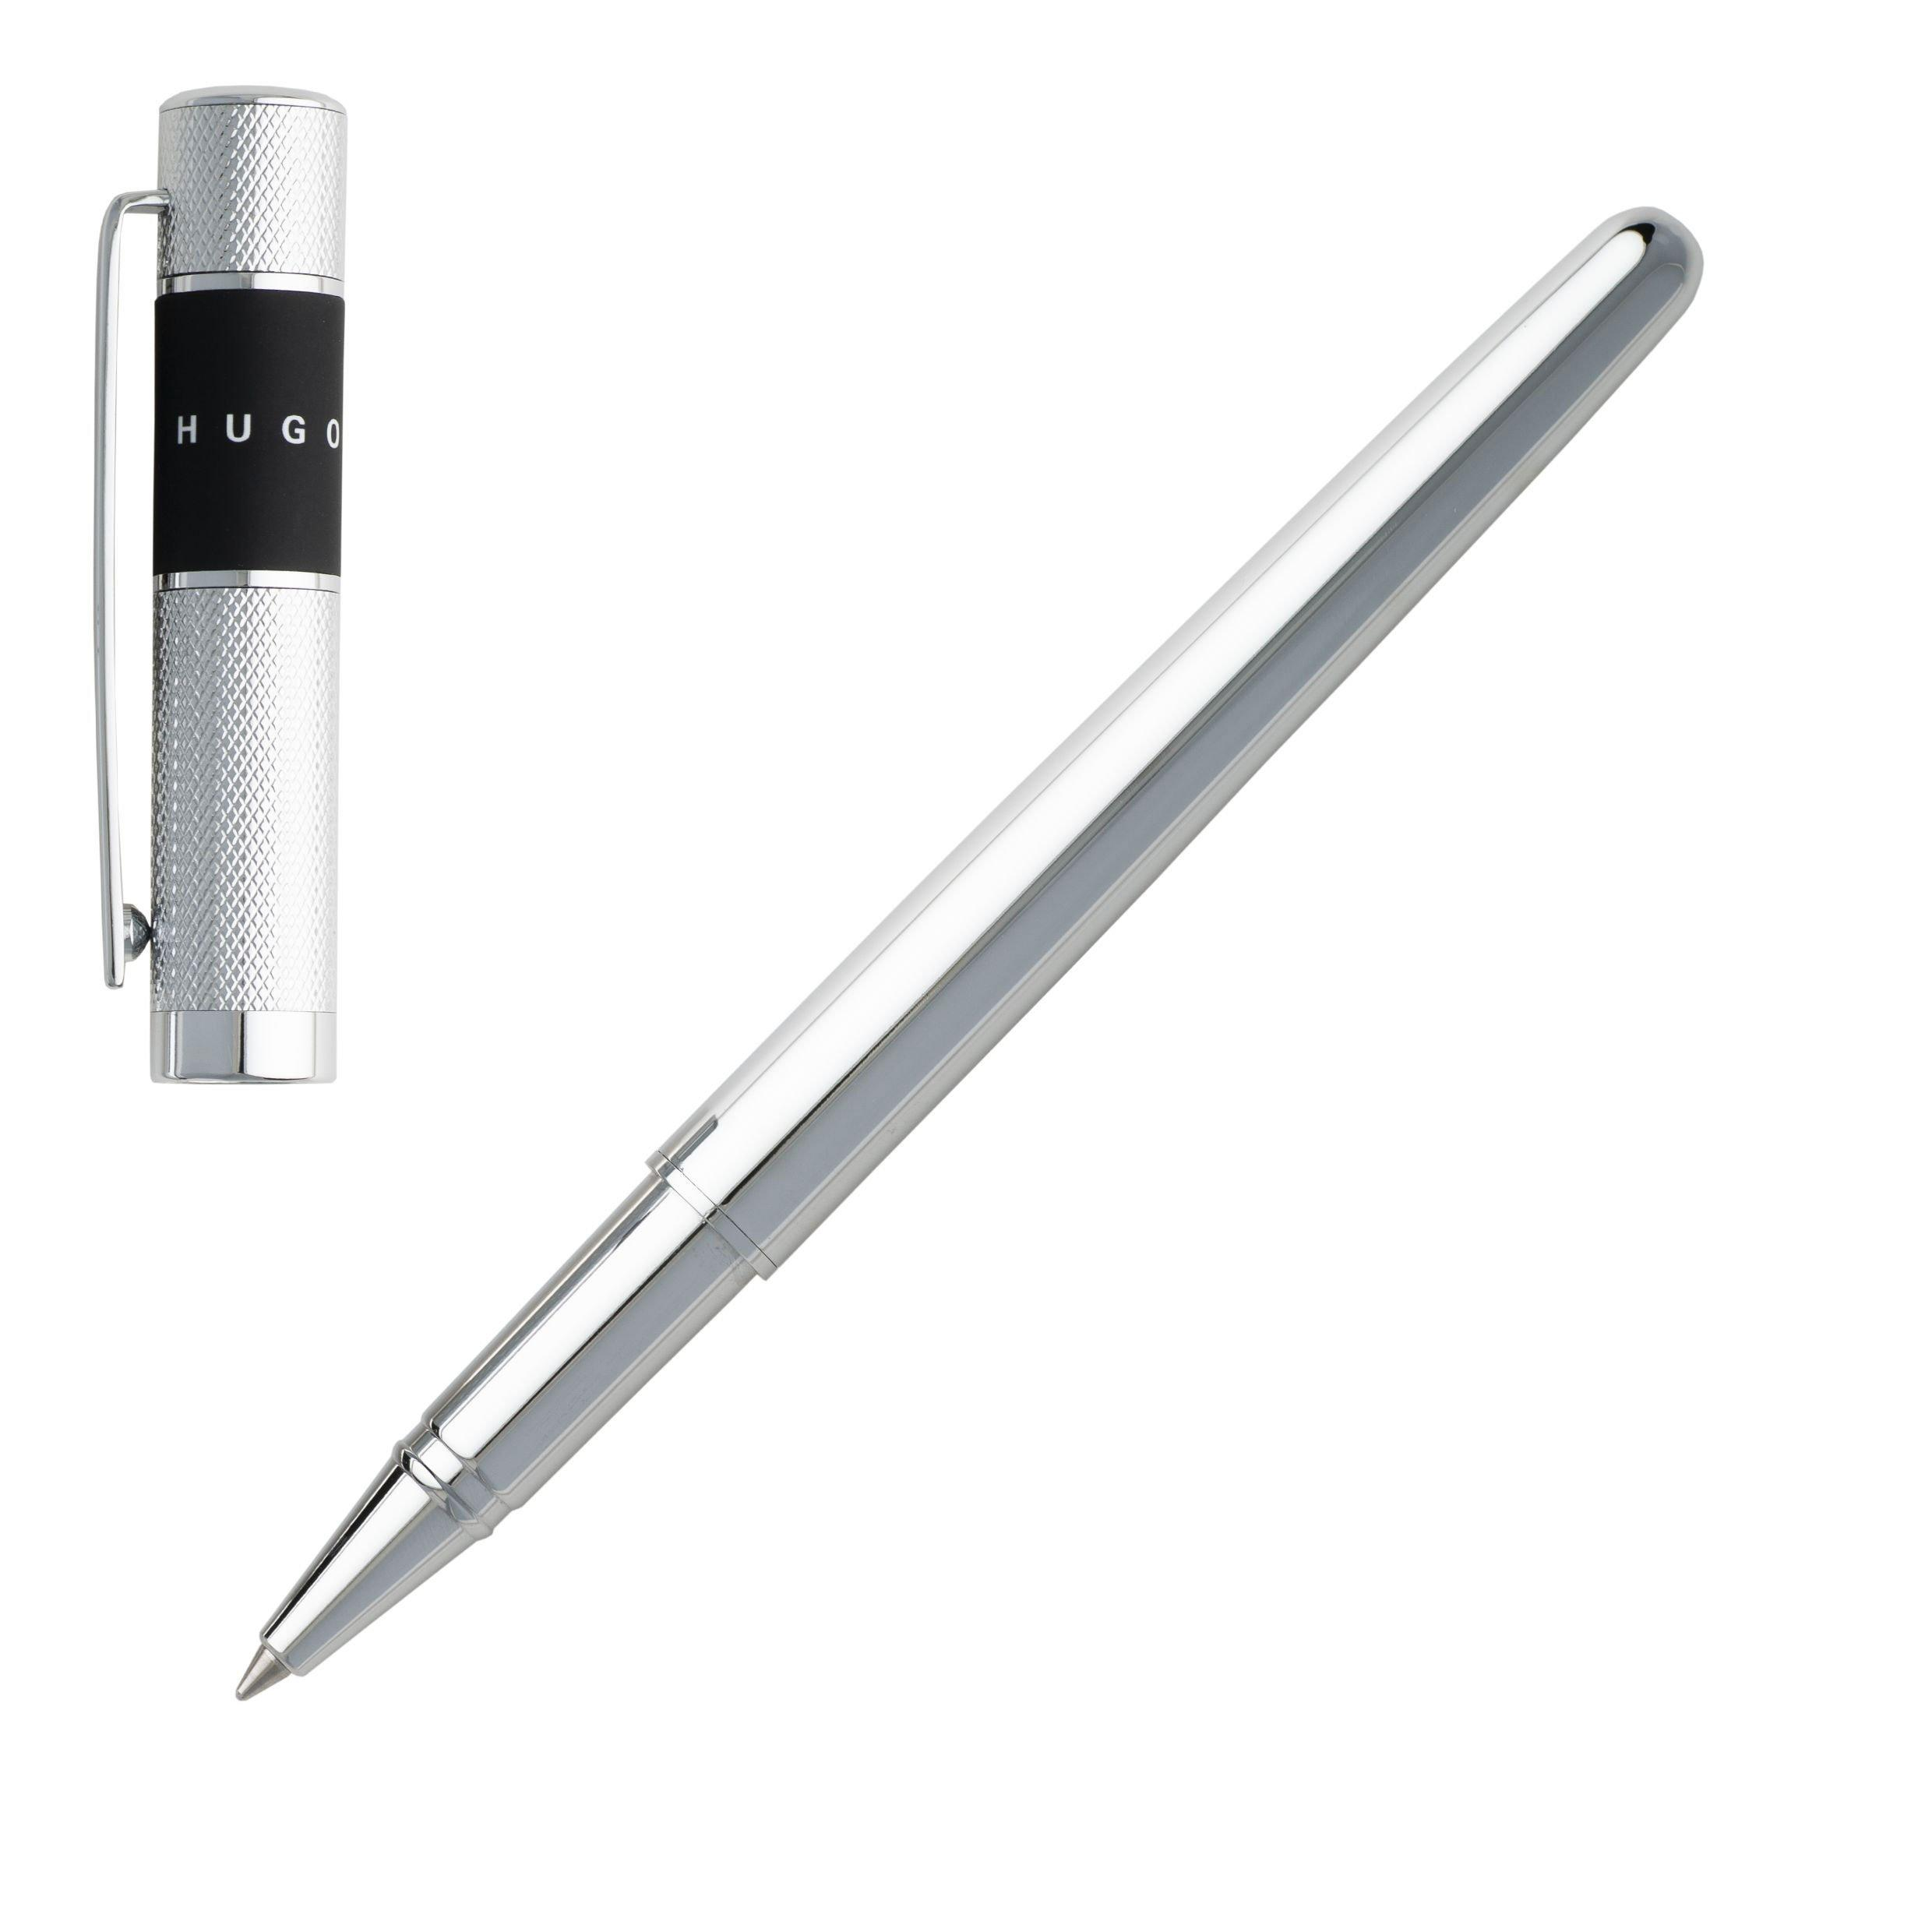 BOSS Chrome Rollerball Pen